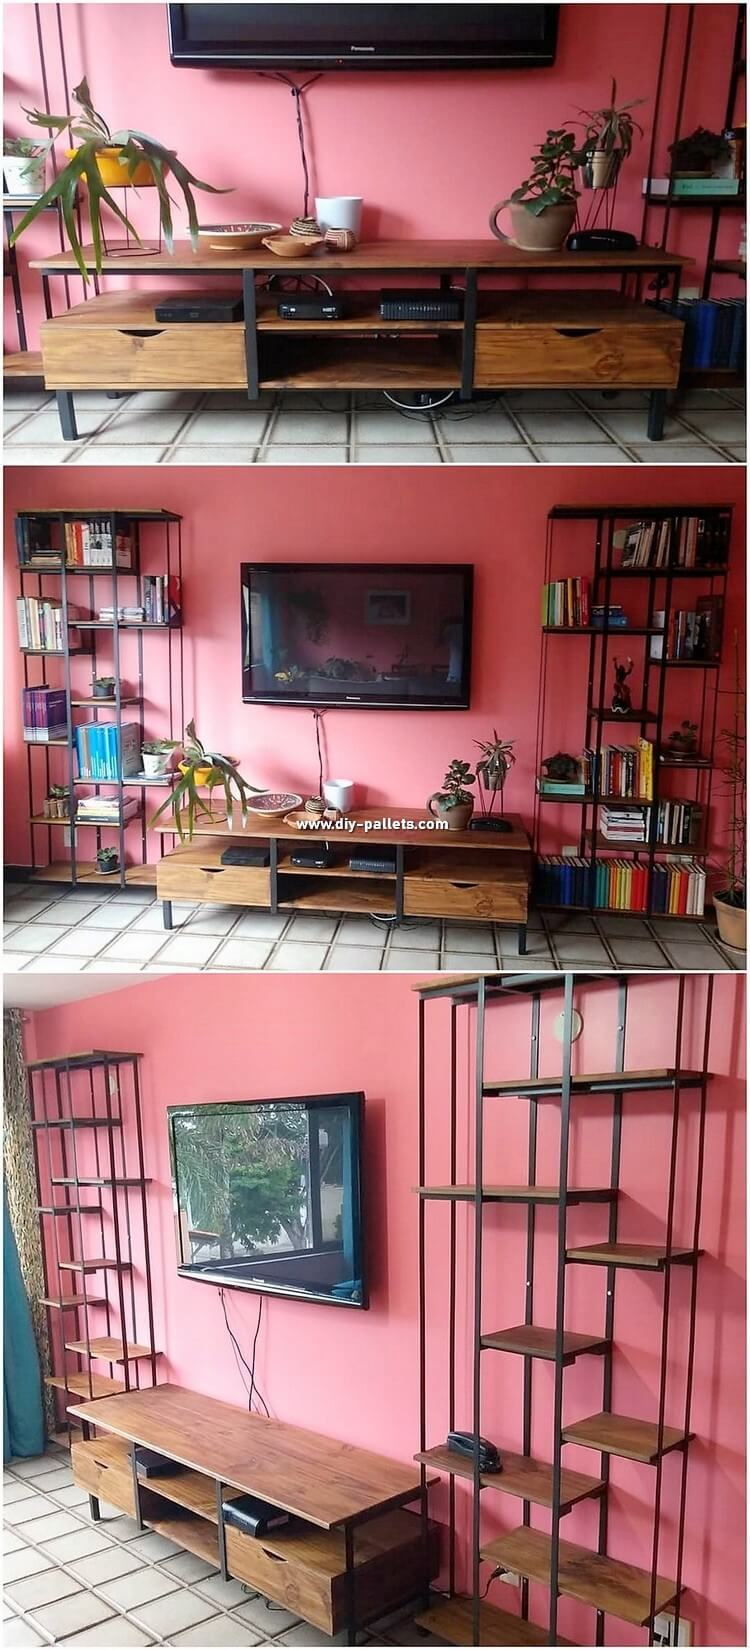 Pallet Media Cabinet and Shelving Unit